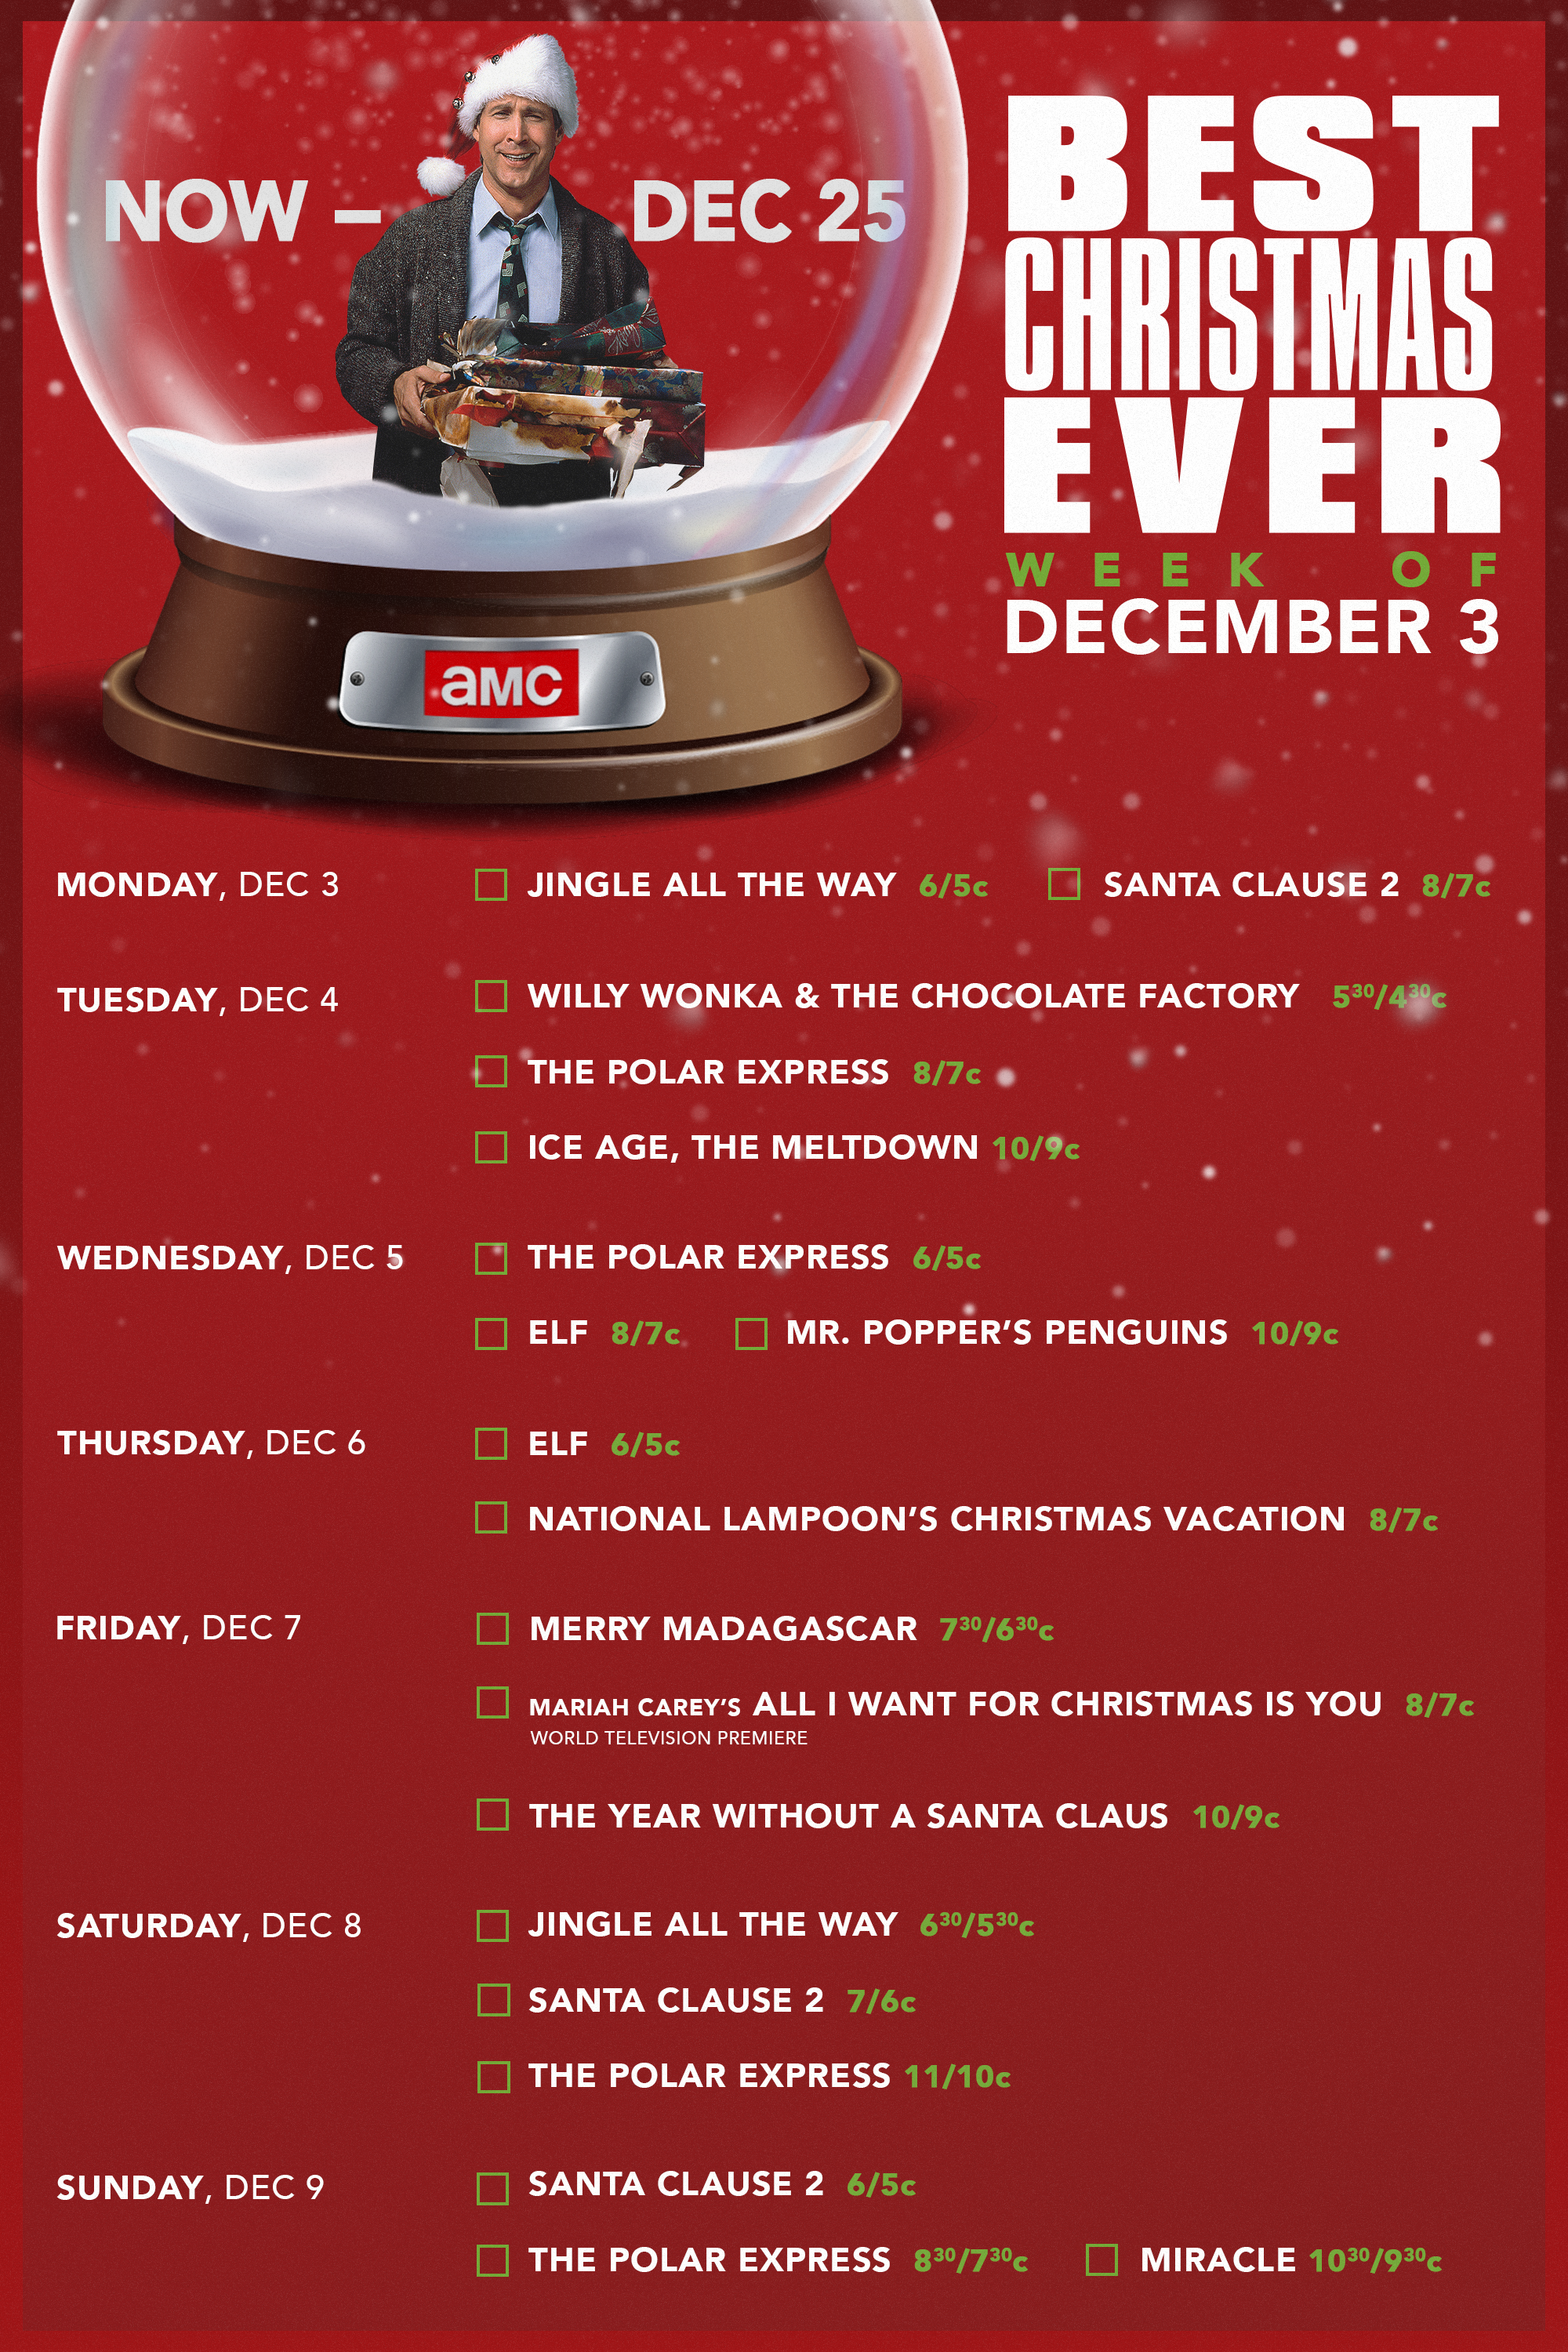 Amc S Bestxmasever Is On Now The Way Movie Christmas Fun Jingle All The Way